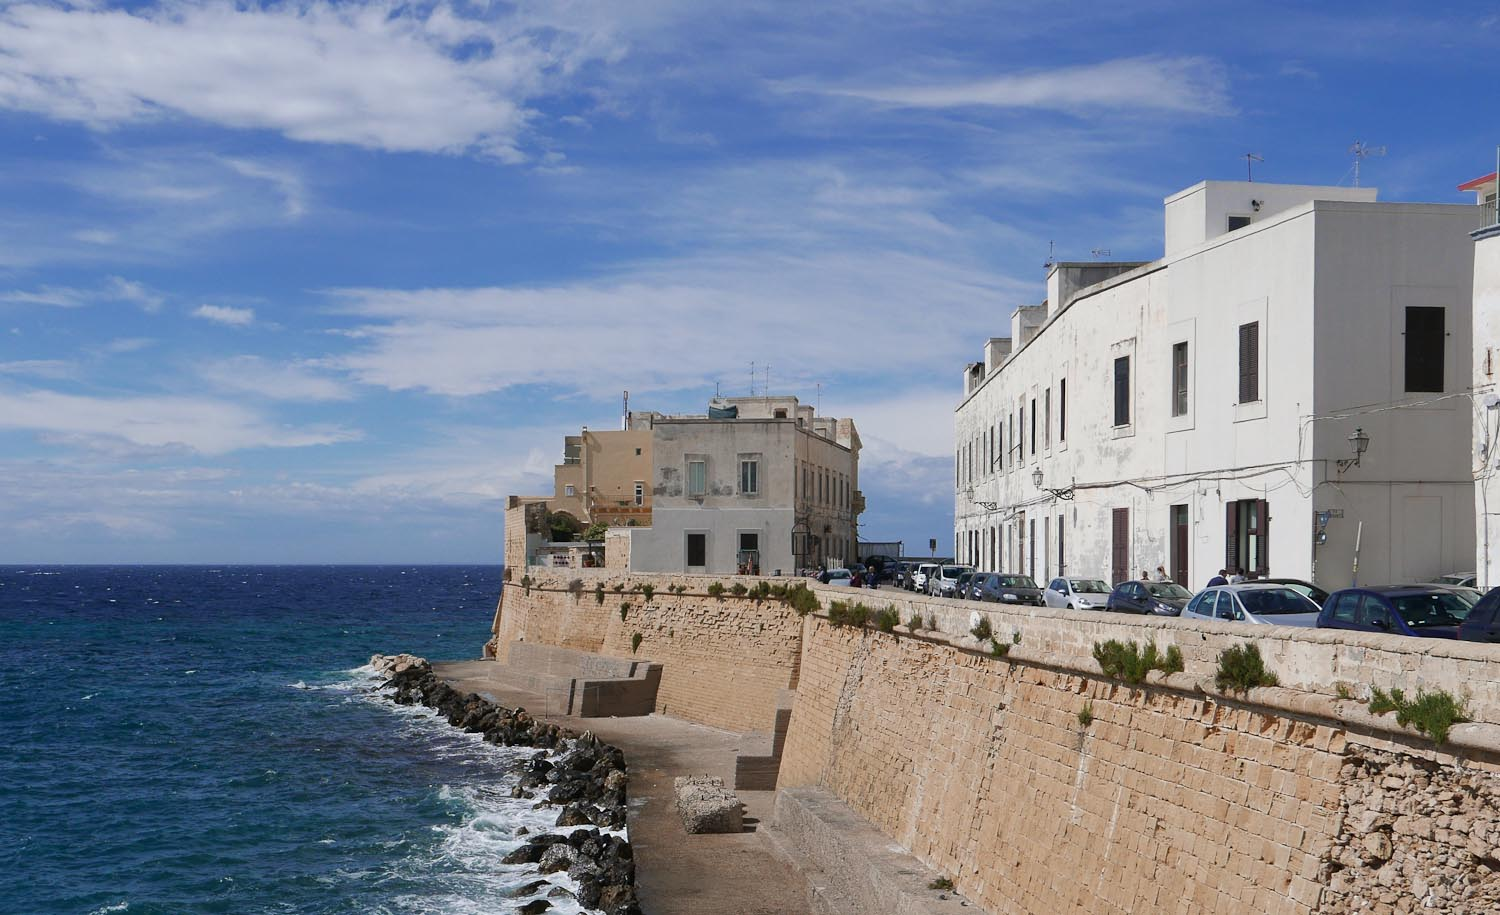 The old town in Gallipoli, Puglia